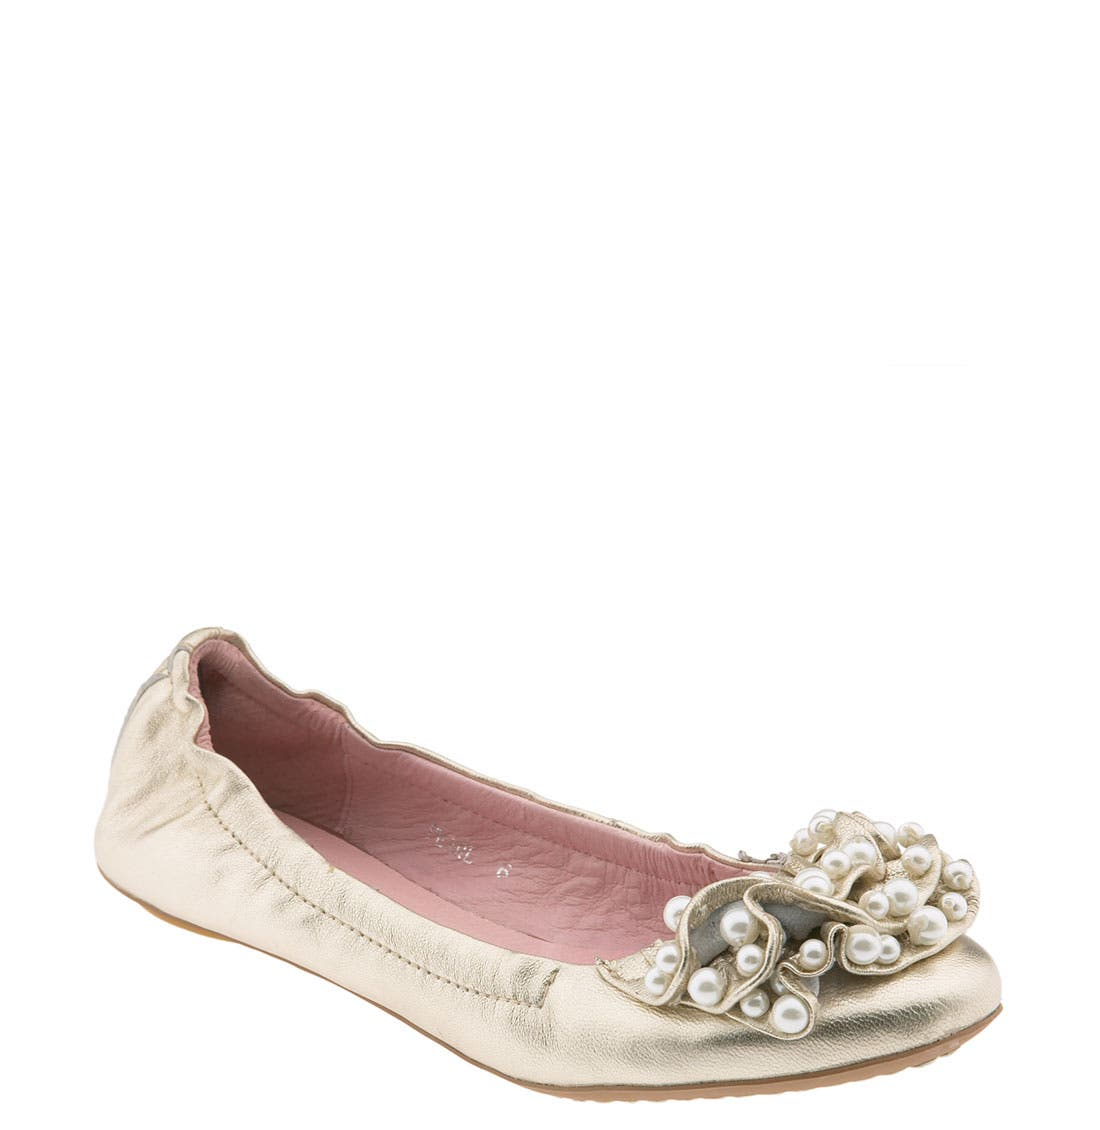 Alternate Image 1 Selected - Jeffrey Campbell 'Pearl' Flat